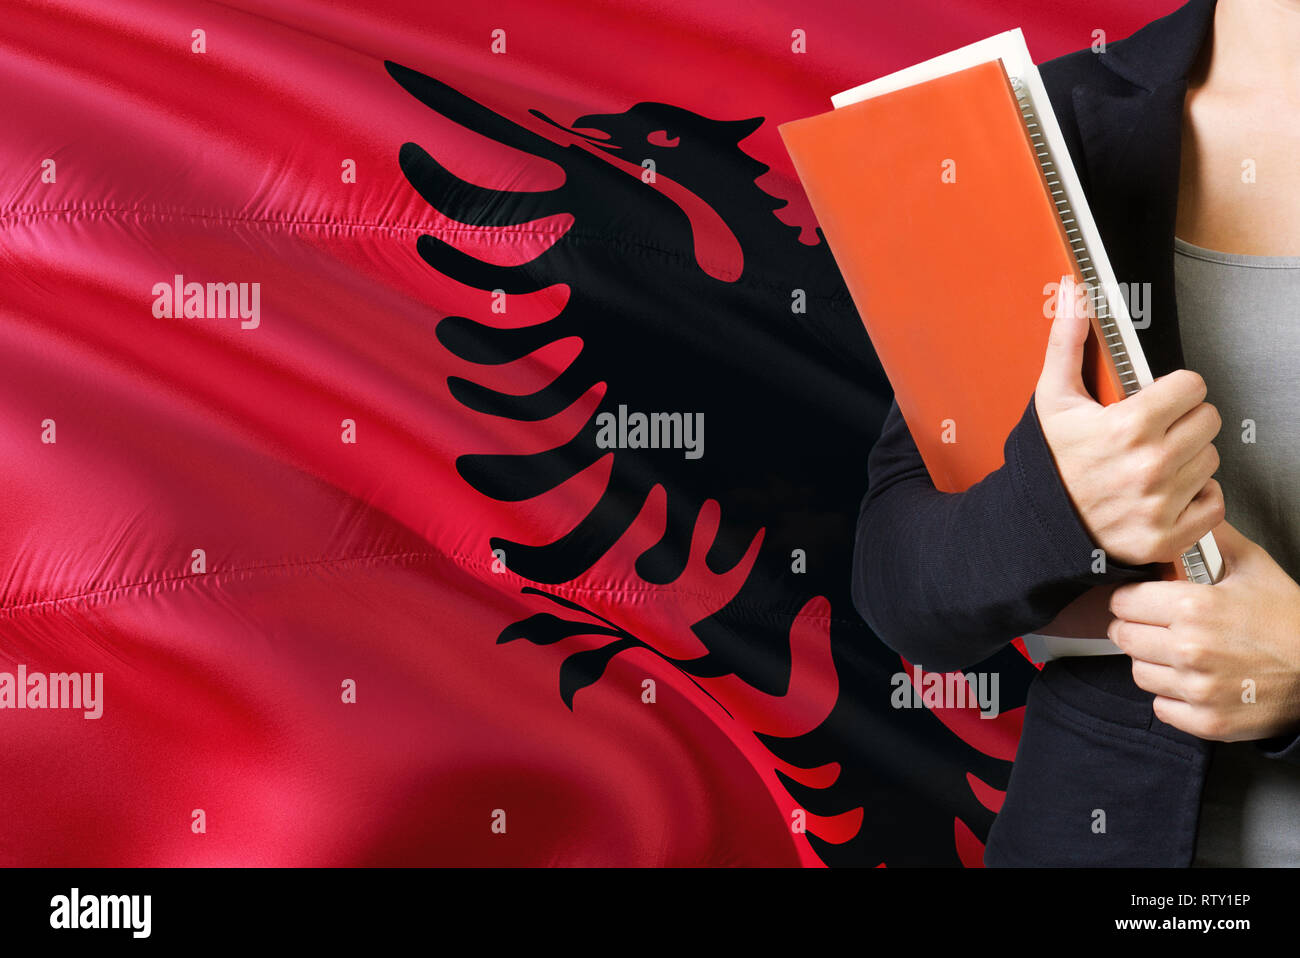 International Albanian Language Course | Just another ...